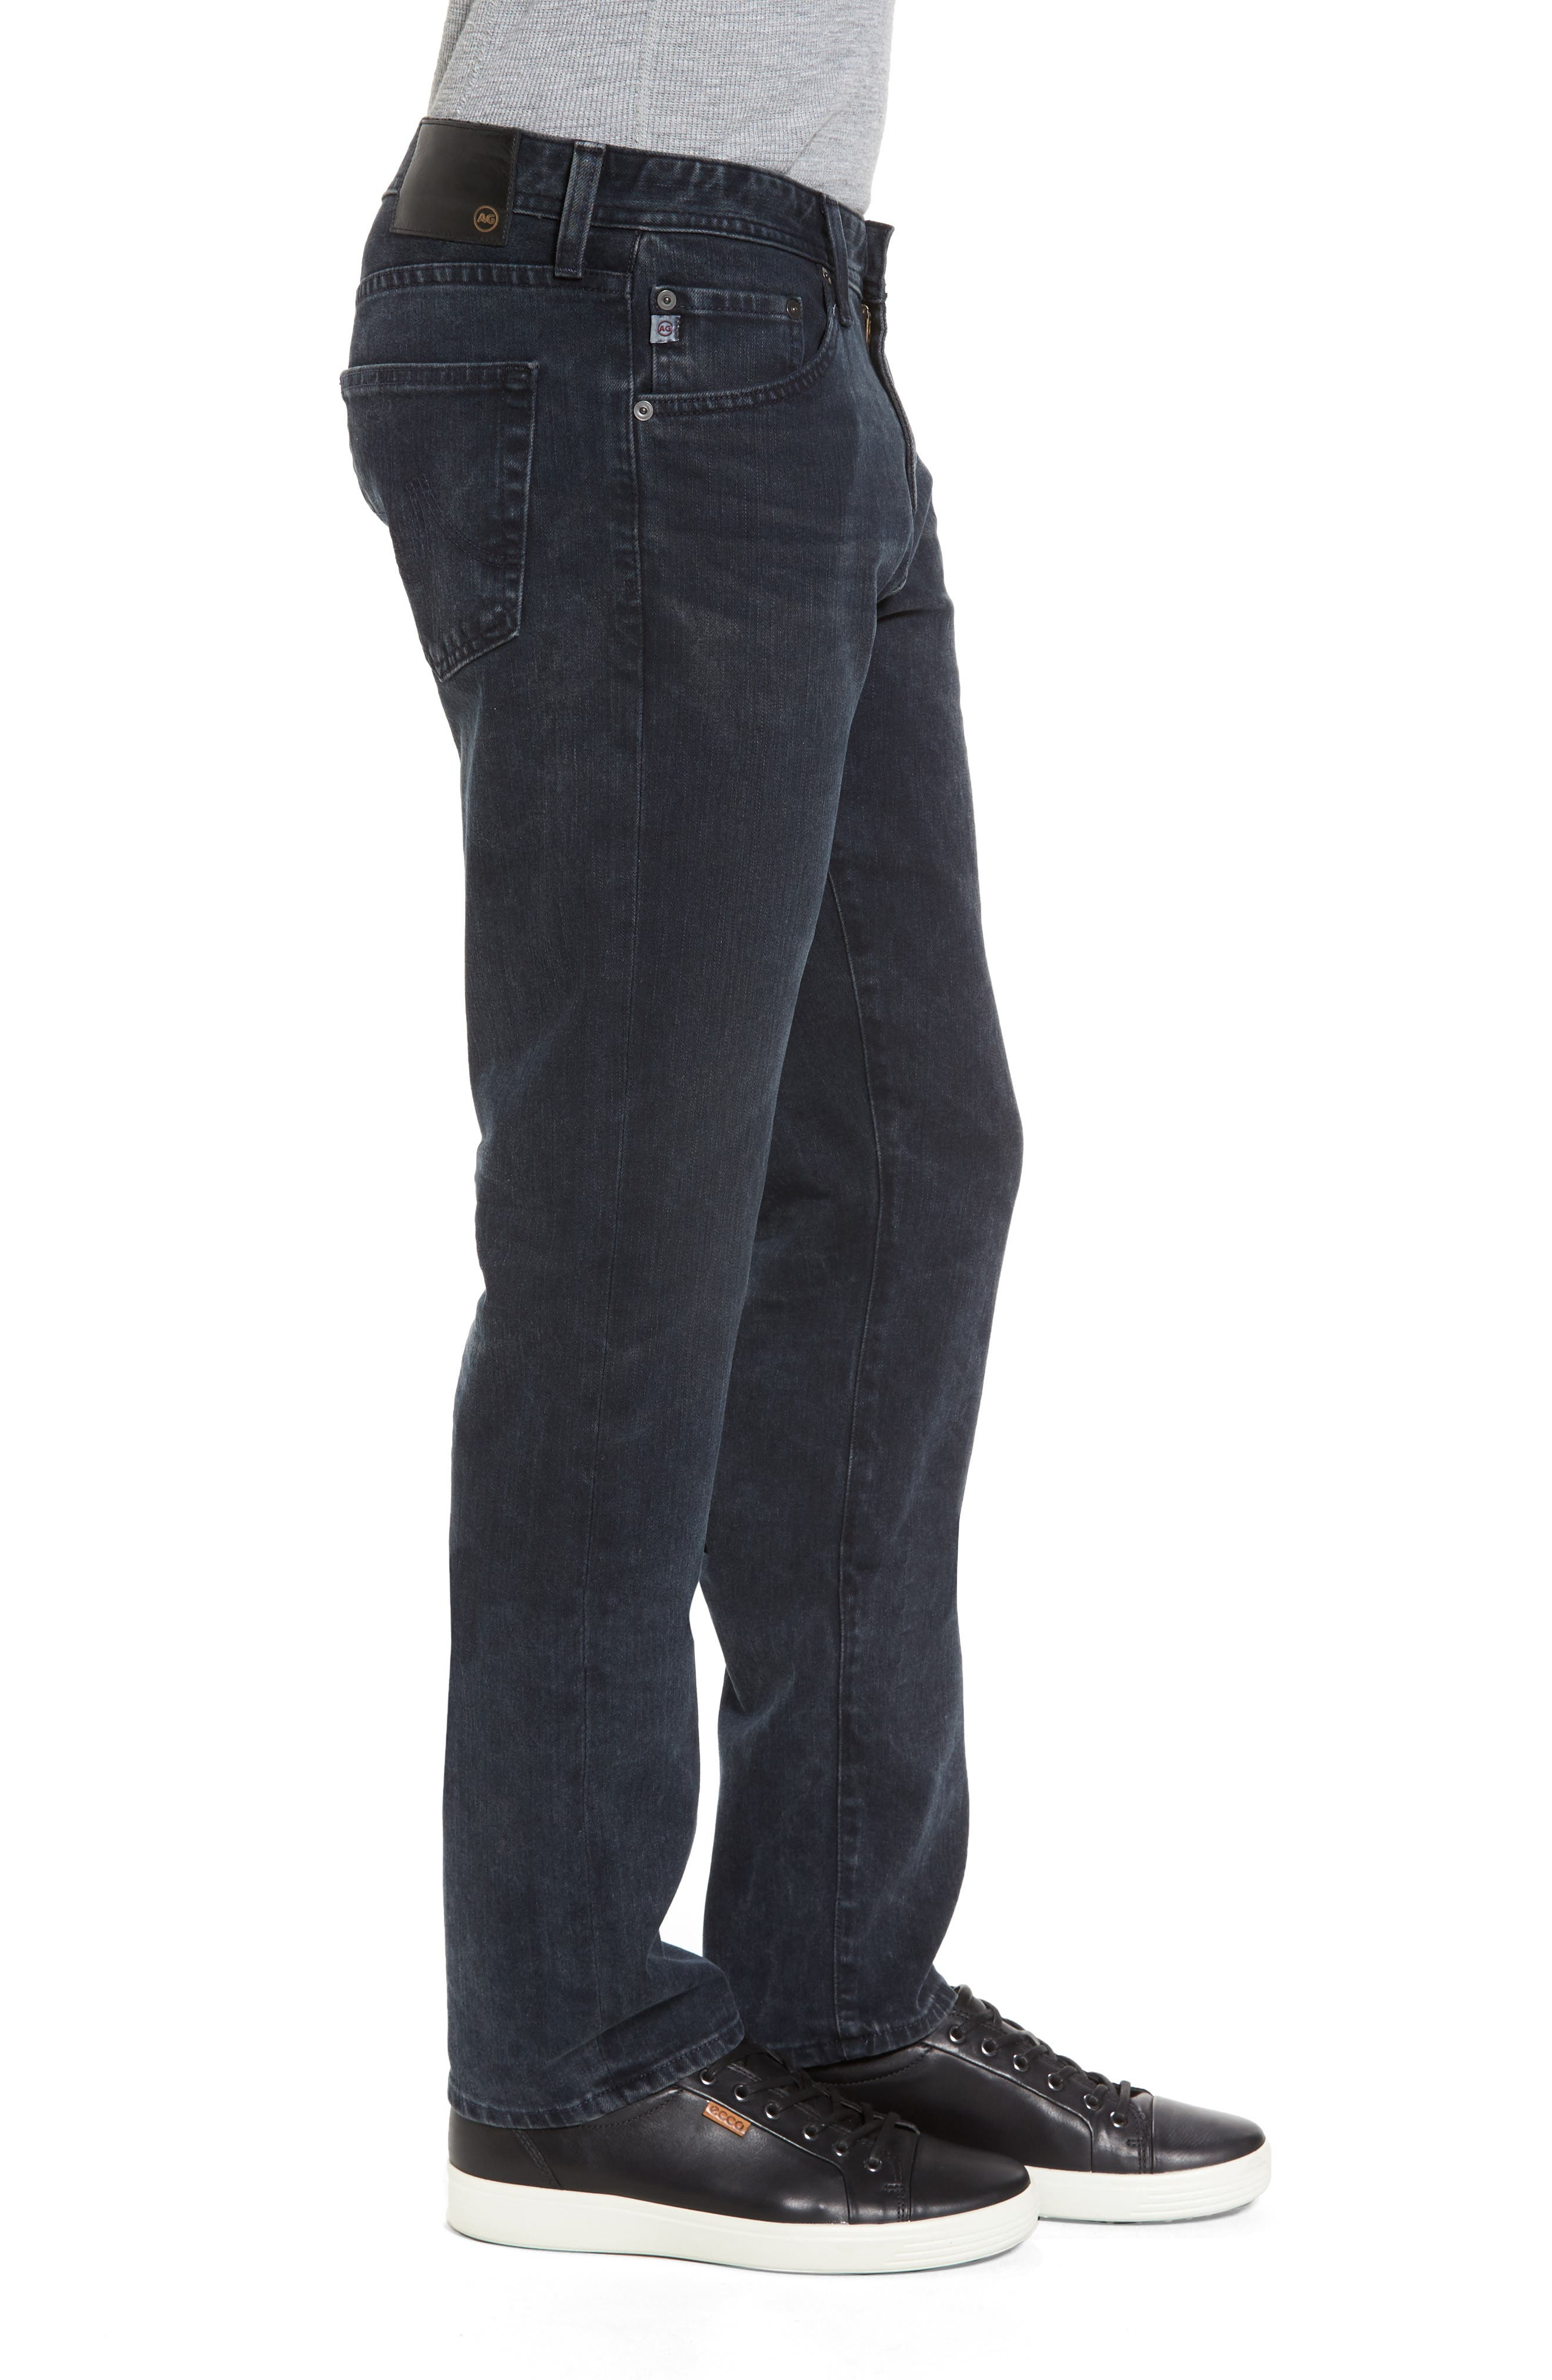 Graduate Slim Straight Leg Jeans,                             Alternate thumbnail 3, color,                             419